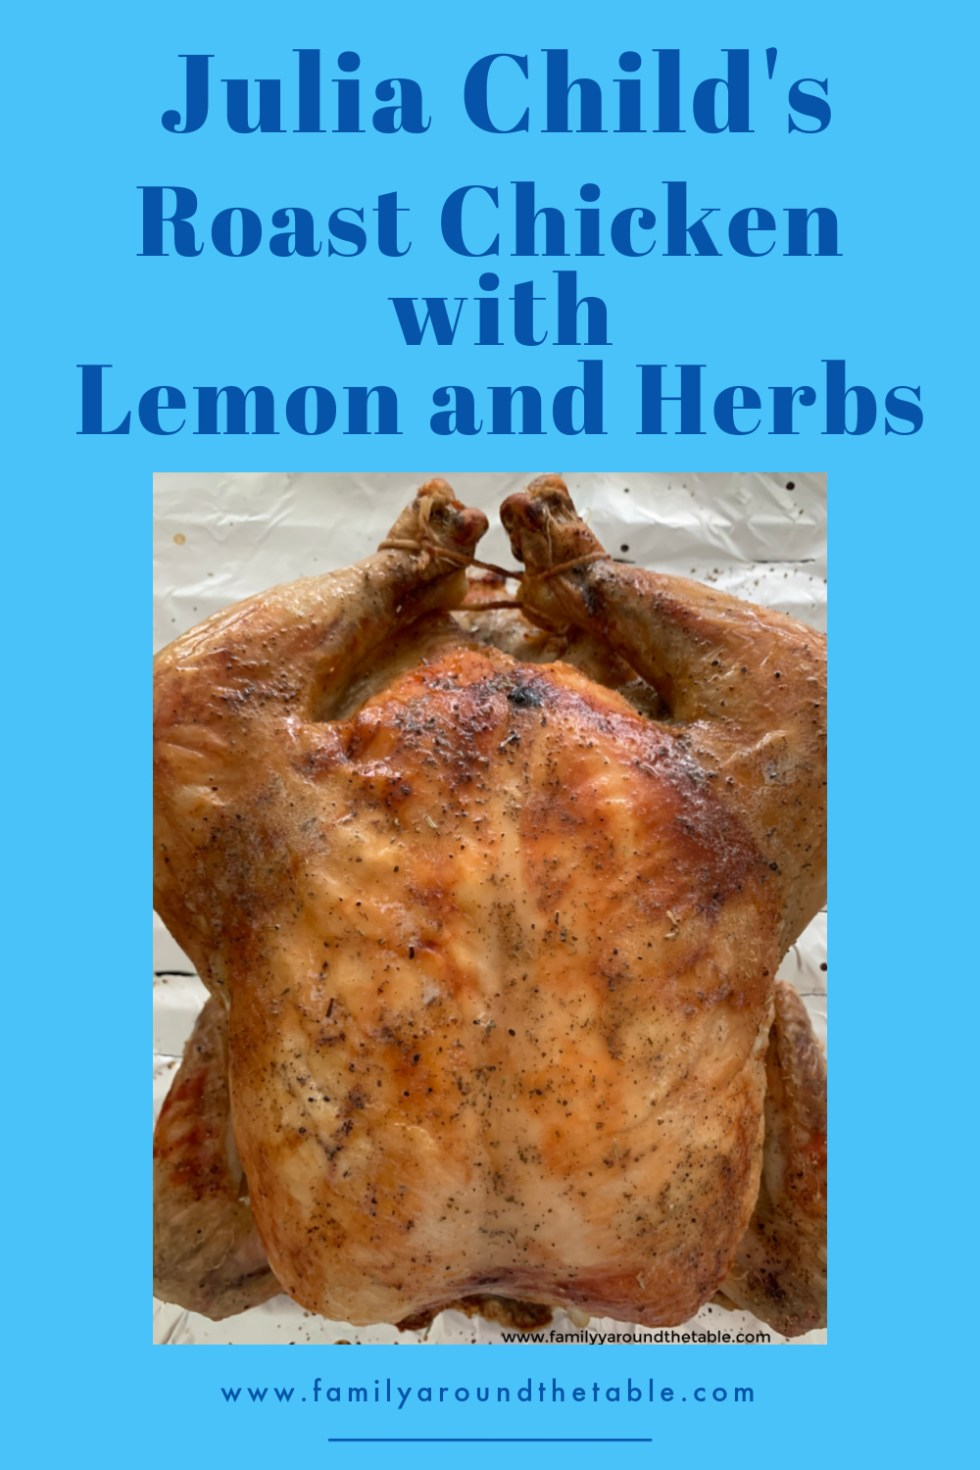 Roast Chicken with Lemon and Herbs Pinterest image